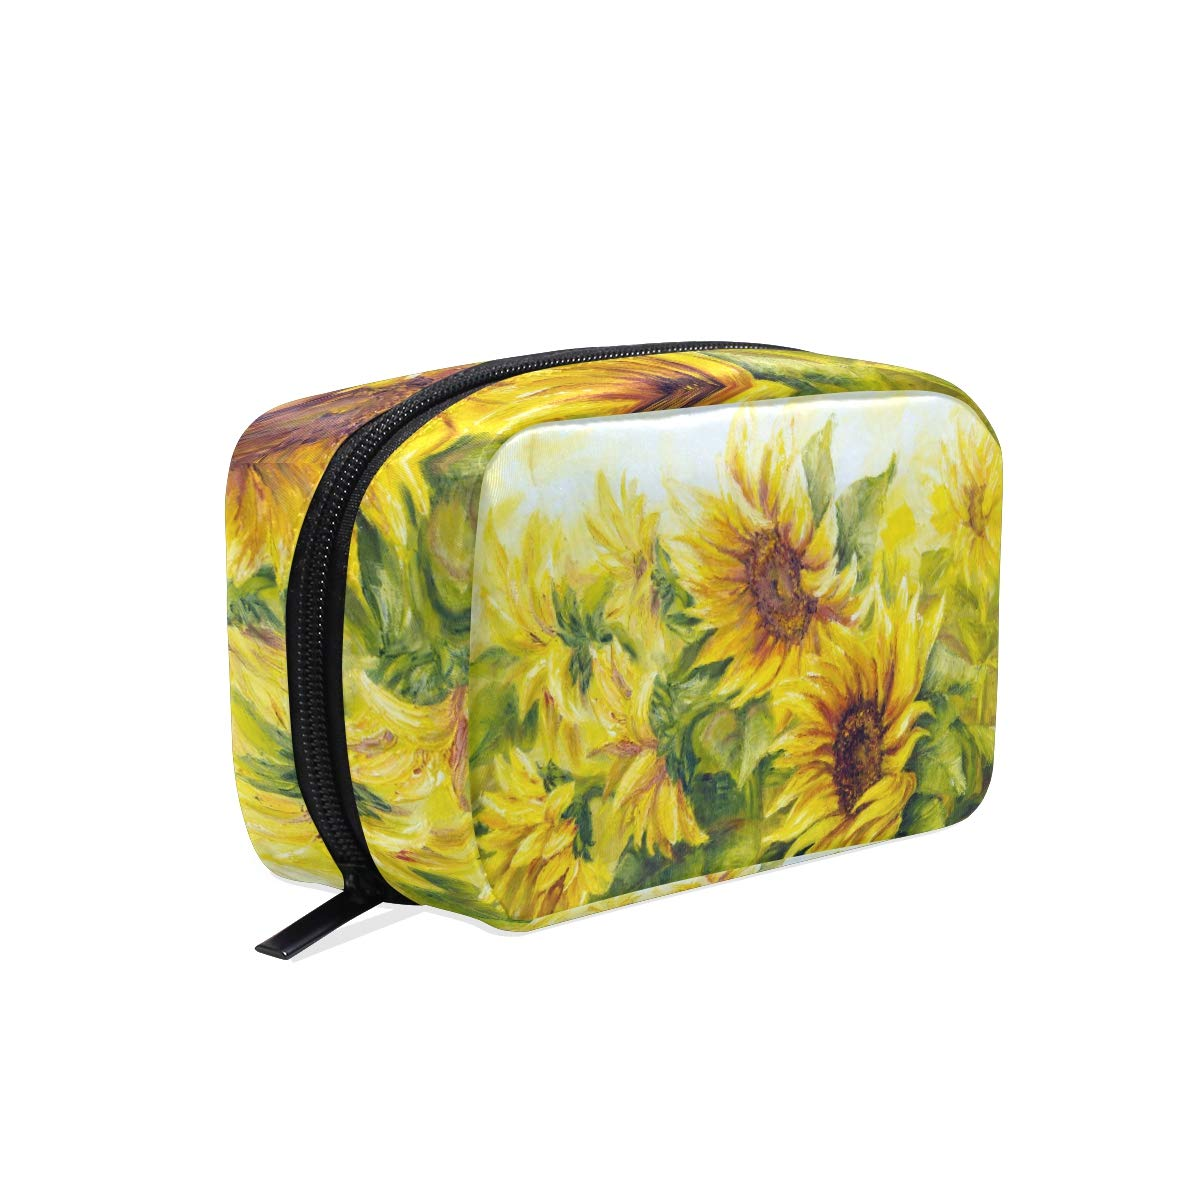 Sunflowers /& Dragonfly Carry Lightweight Large Capacity Portable Travel Luggage Trolley Bag